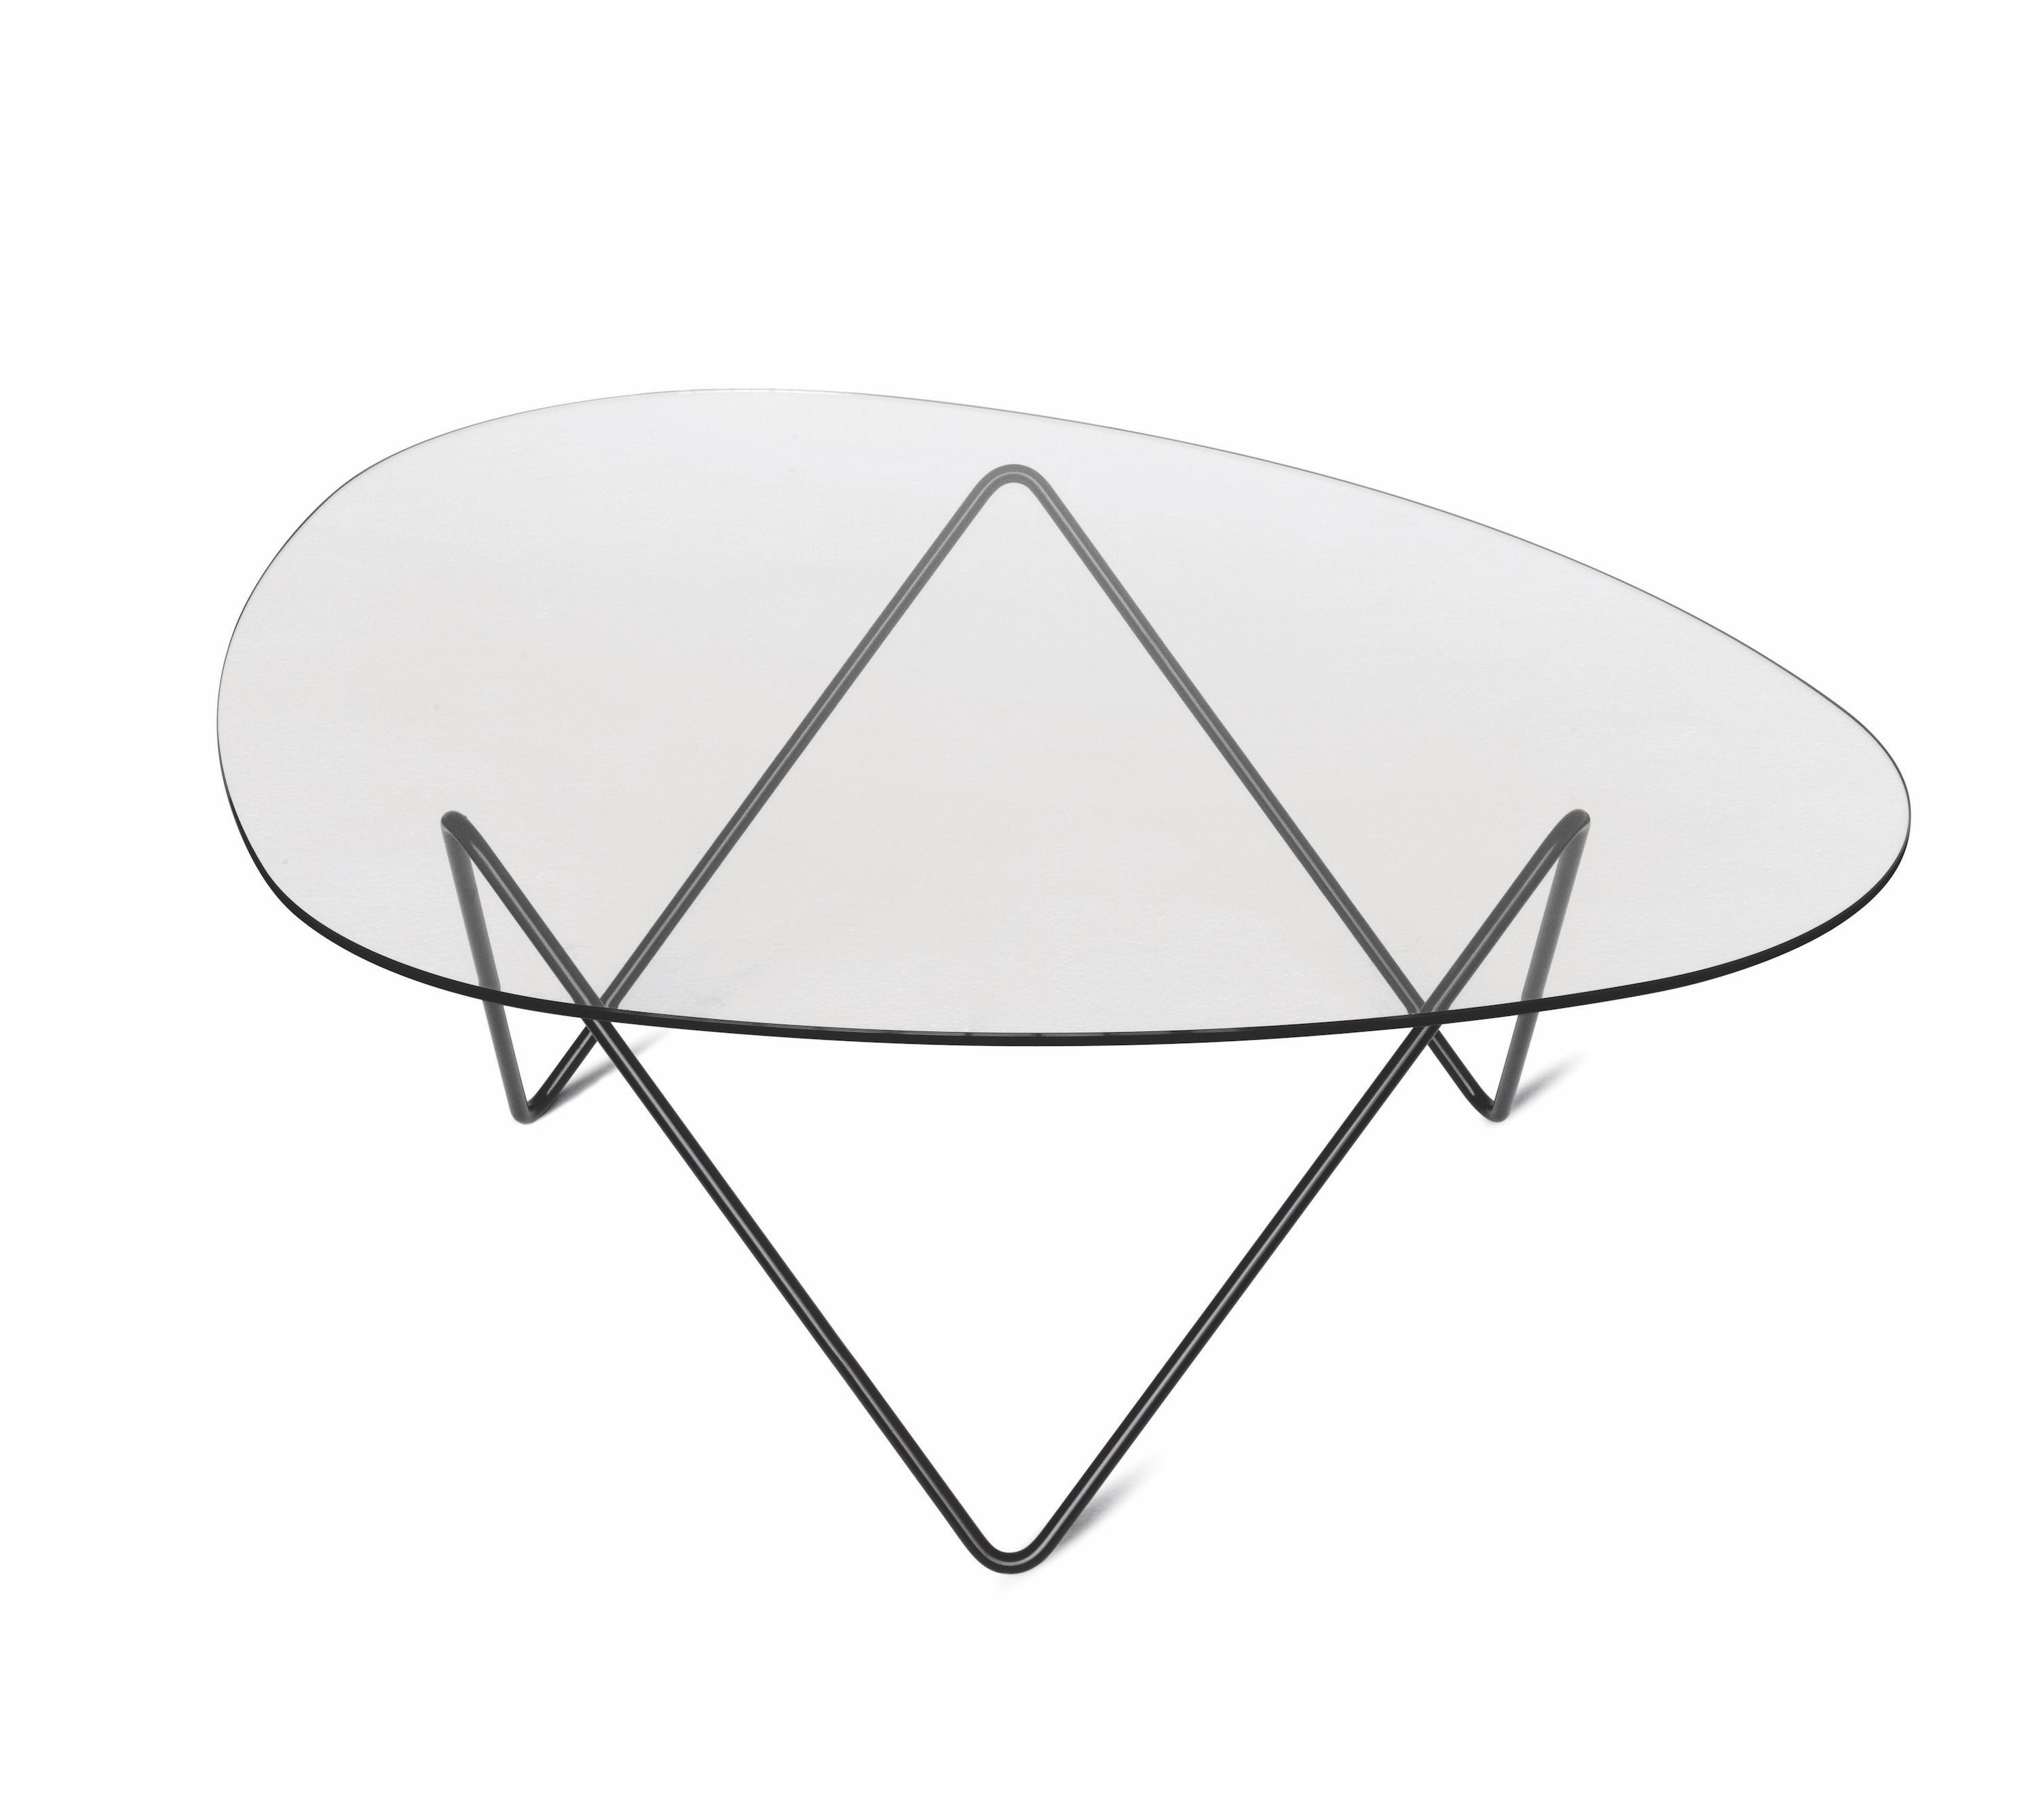 Gubi Pedrera Coffee Table Design Barba Corsini